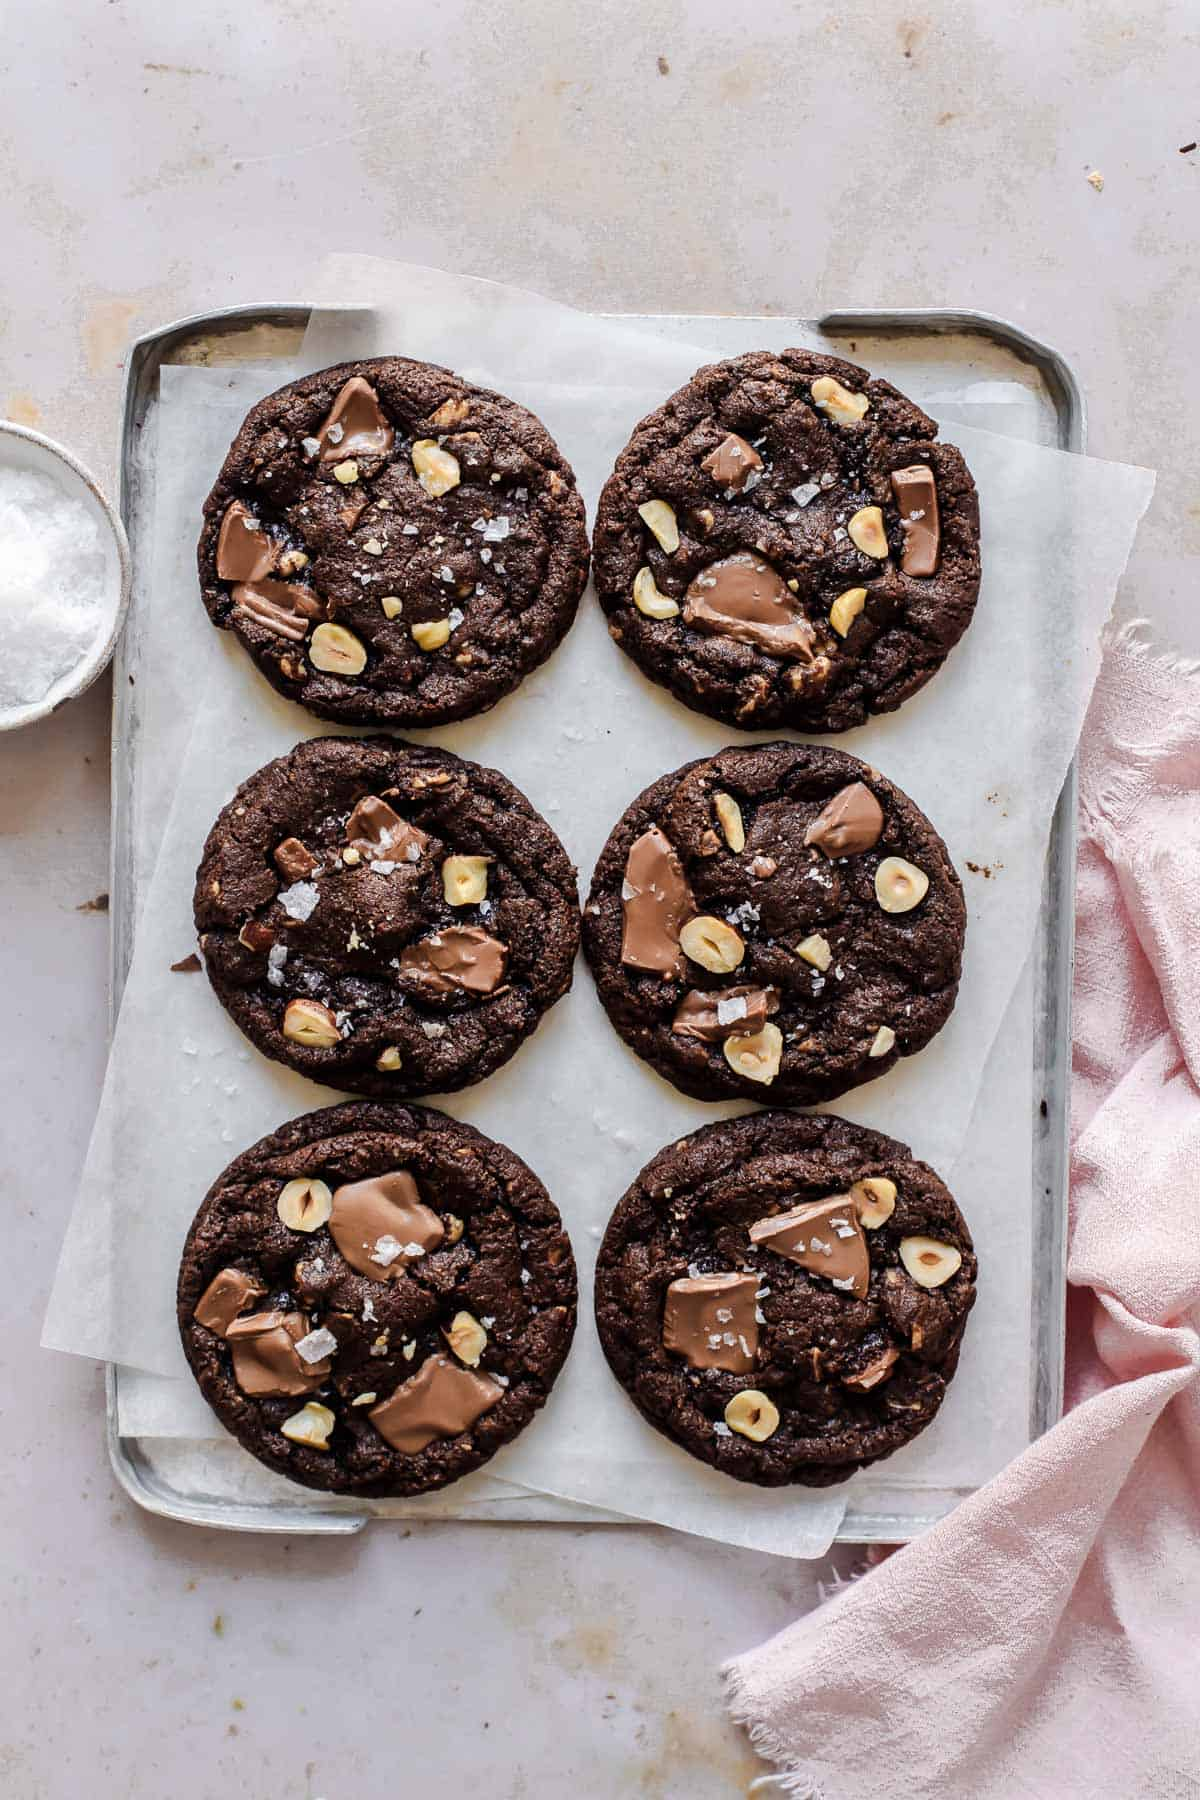 Chewy Chocolate and Hazelnut Cookies on a baking tray fresh from the oven